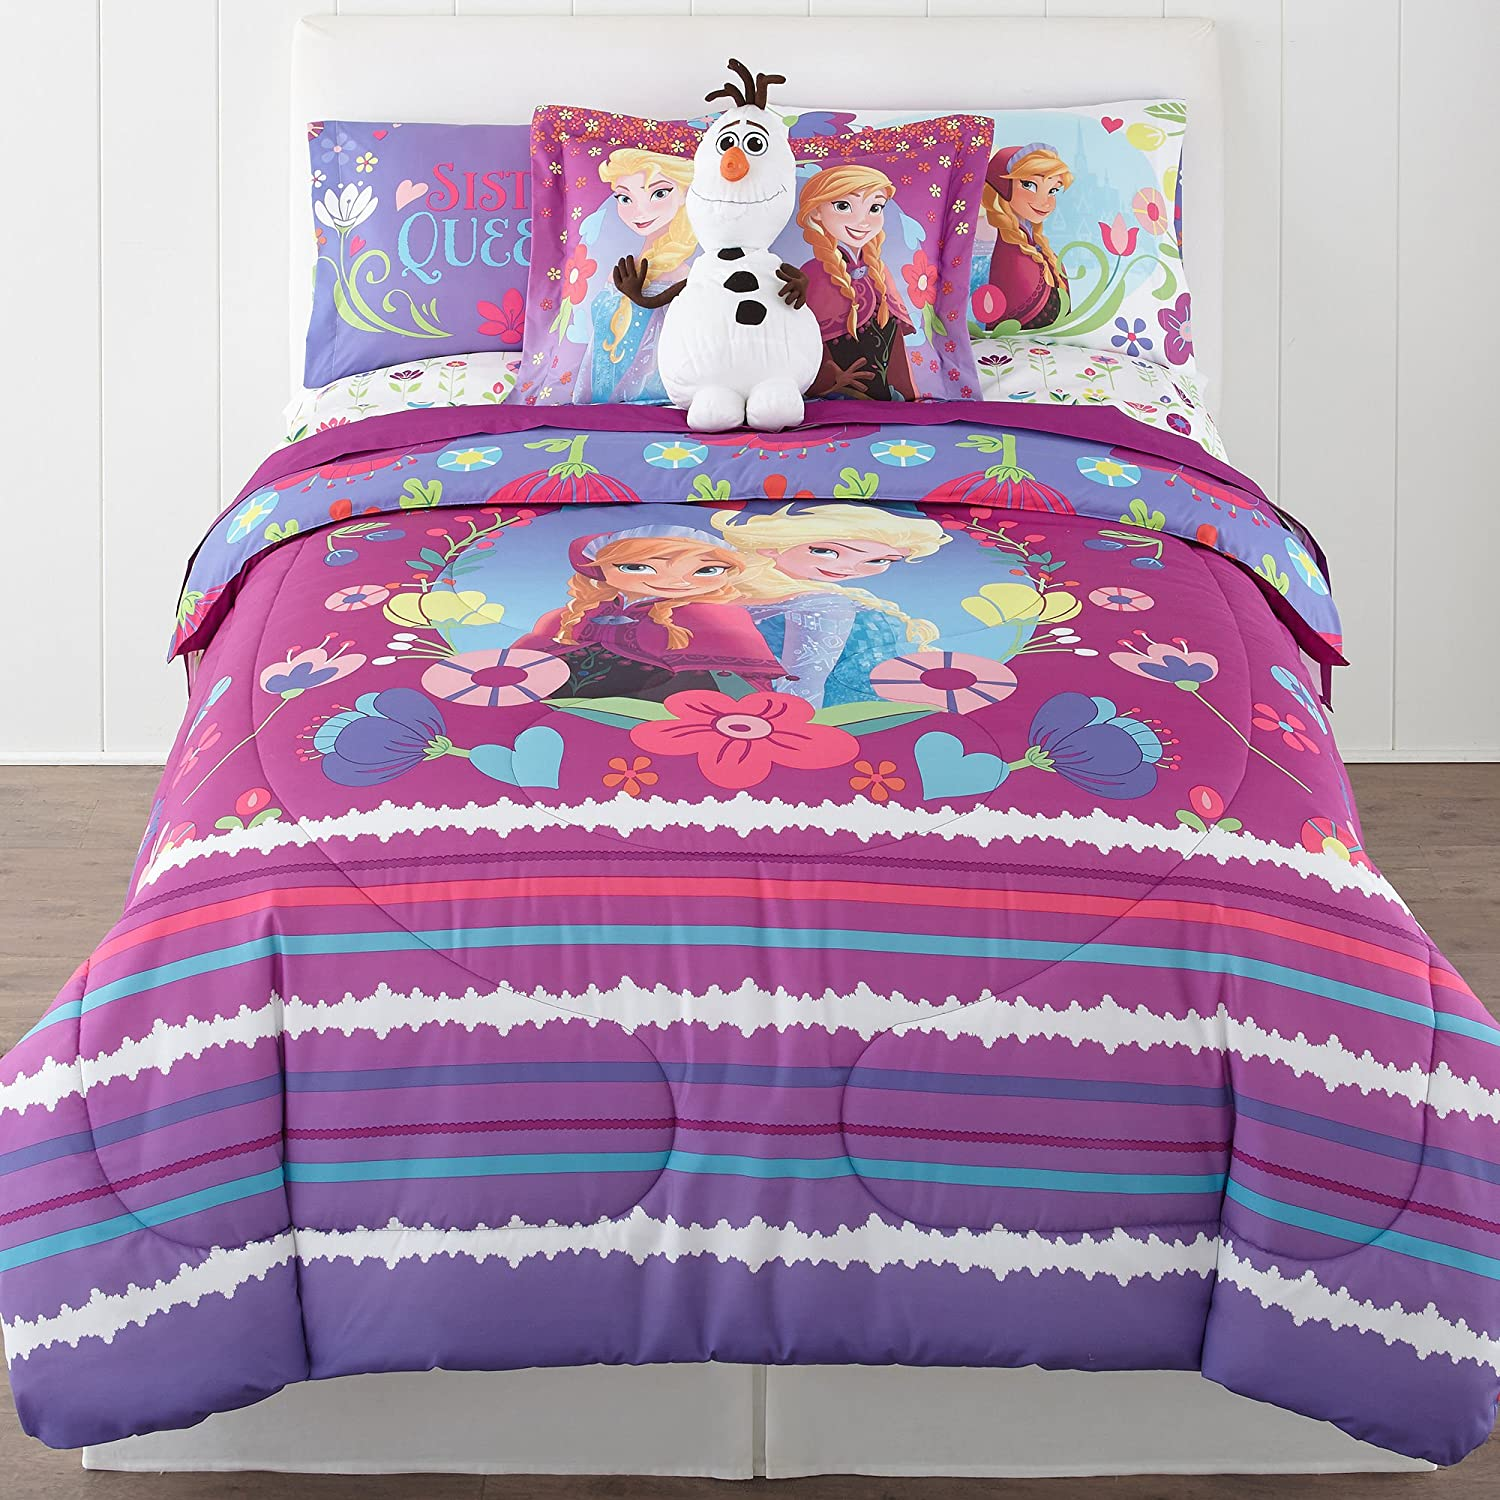 Disney Frozen Nordic Summer Reversible Twin/Full Comforter Bonus Sham Collection